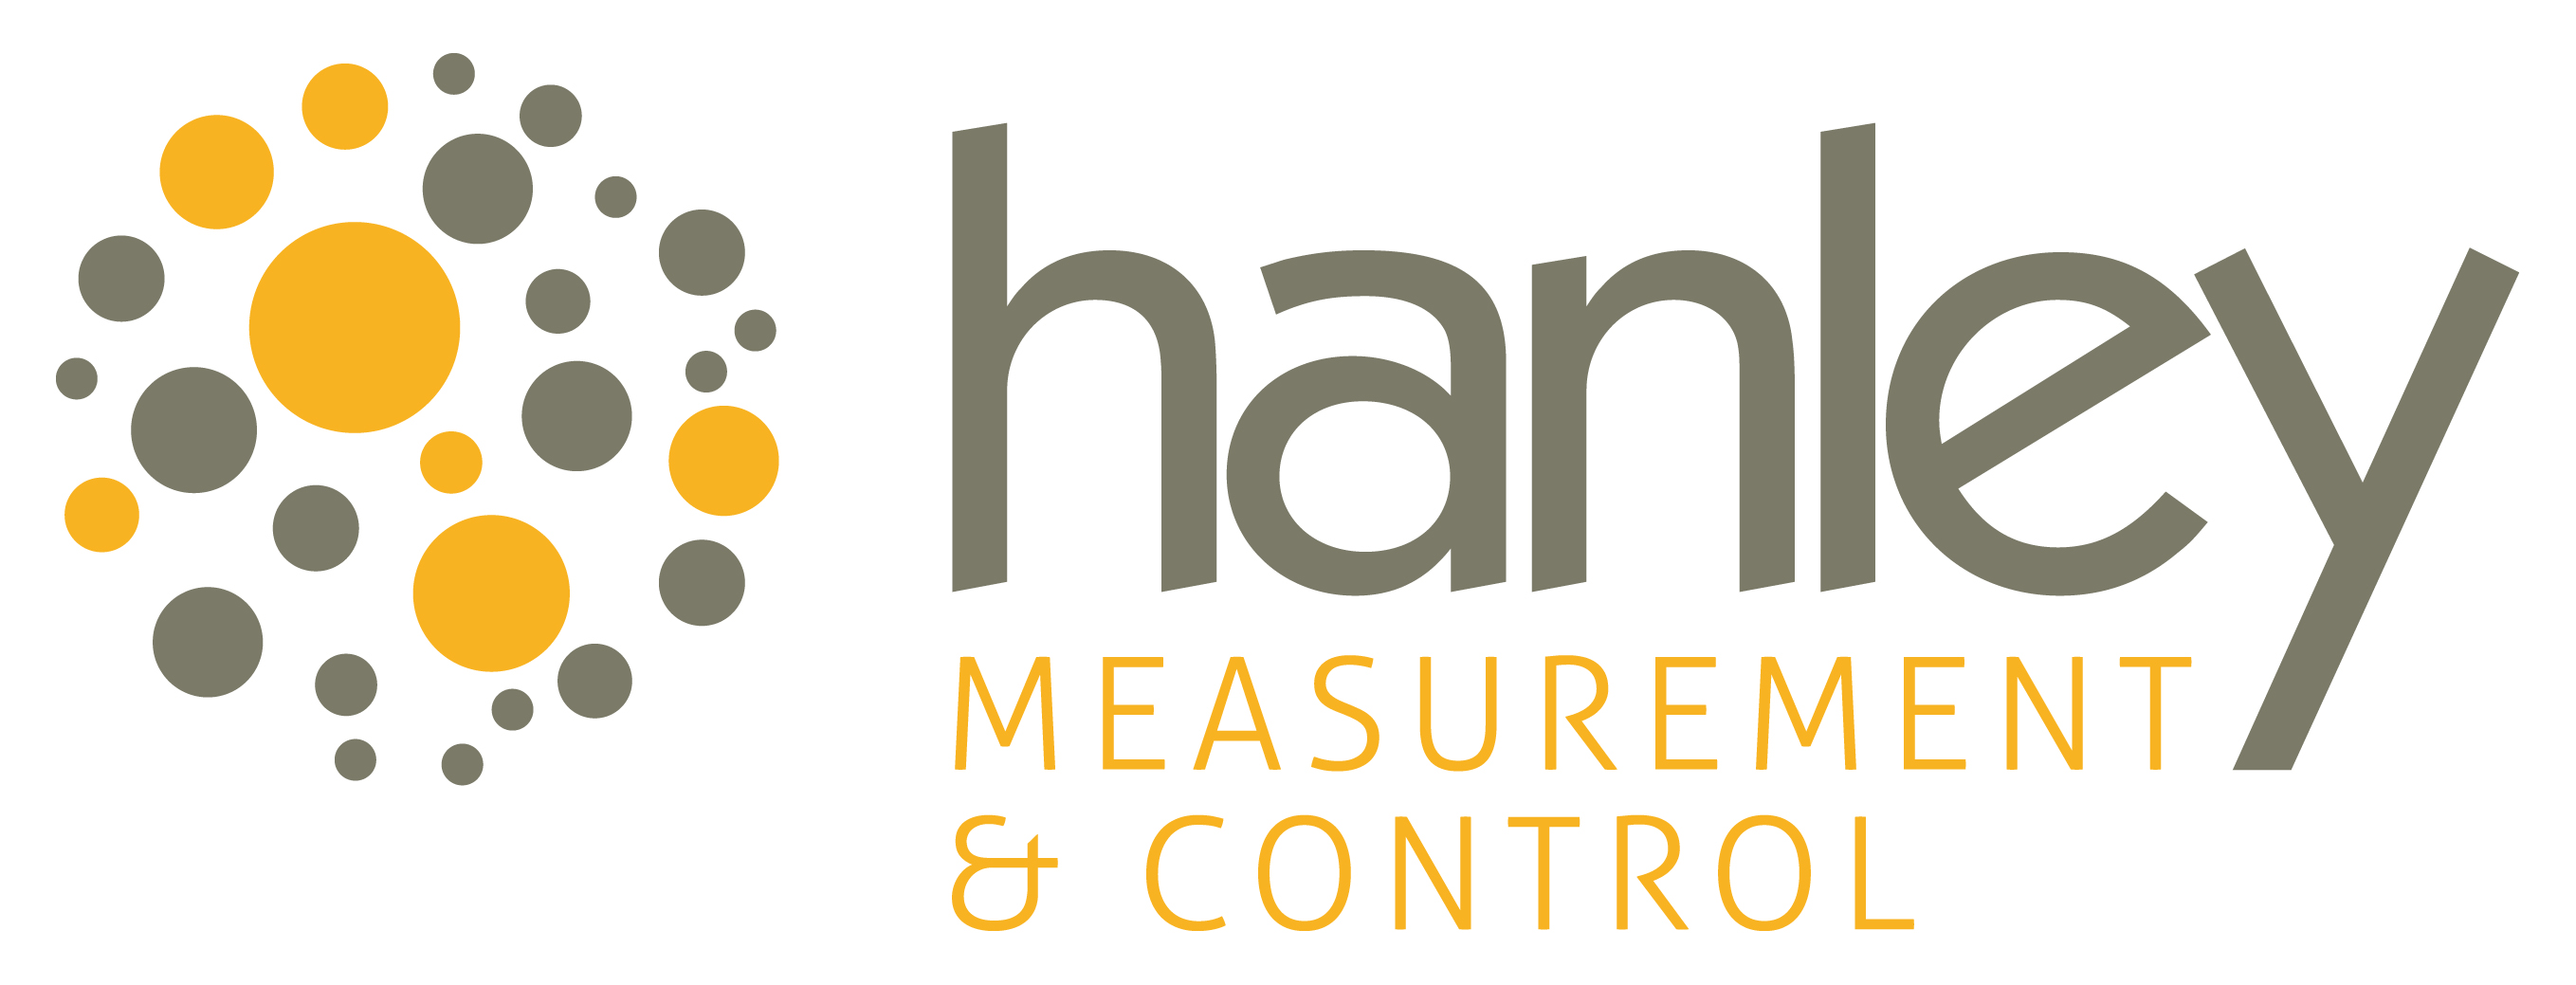 Aegex Technologies Announces Hanley Measurement & Control as Reseller